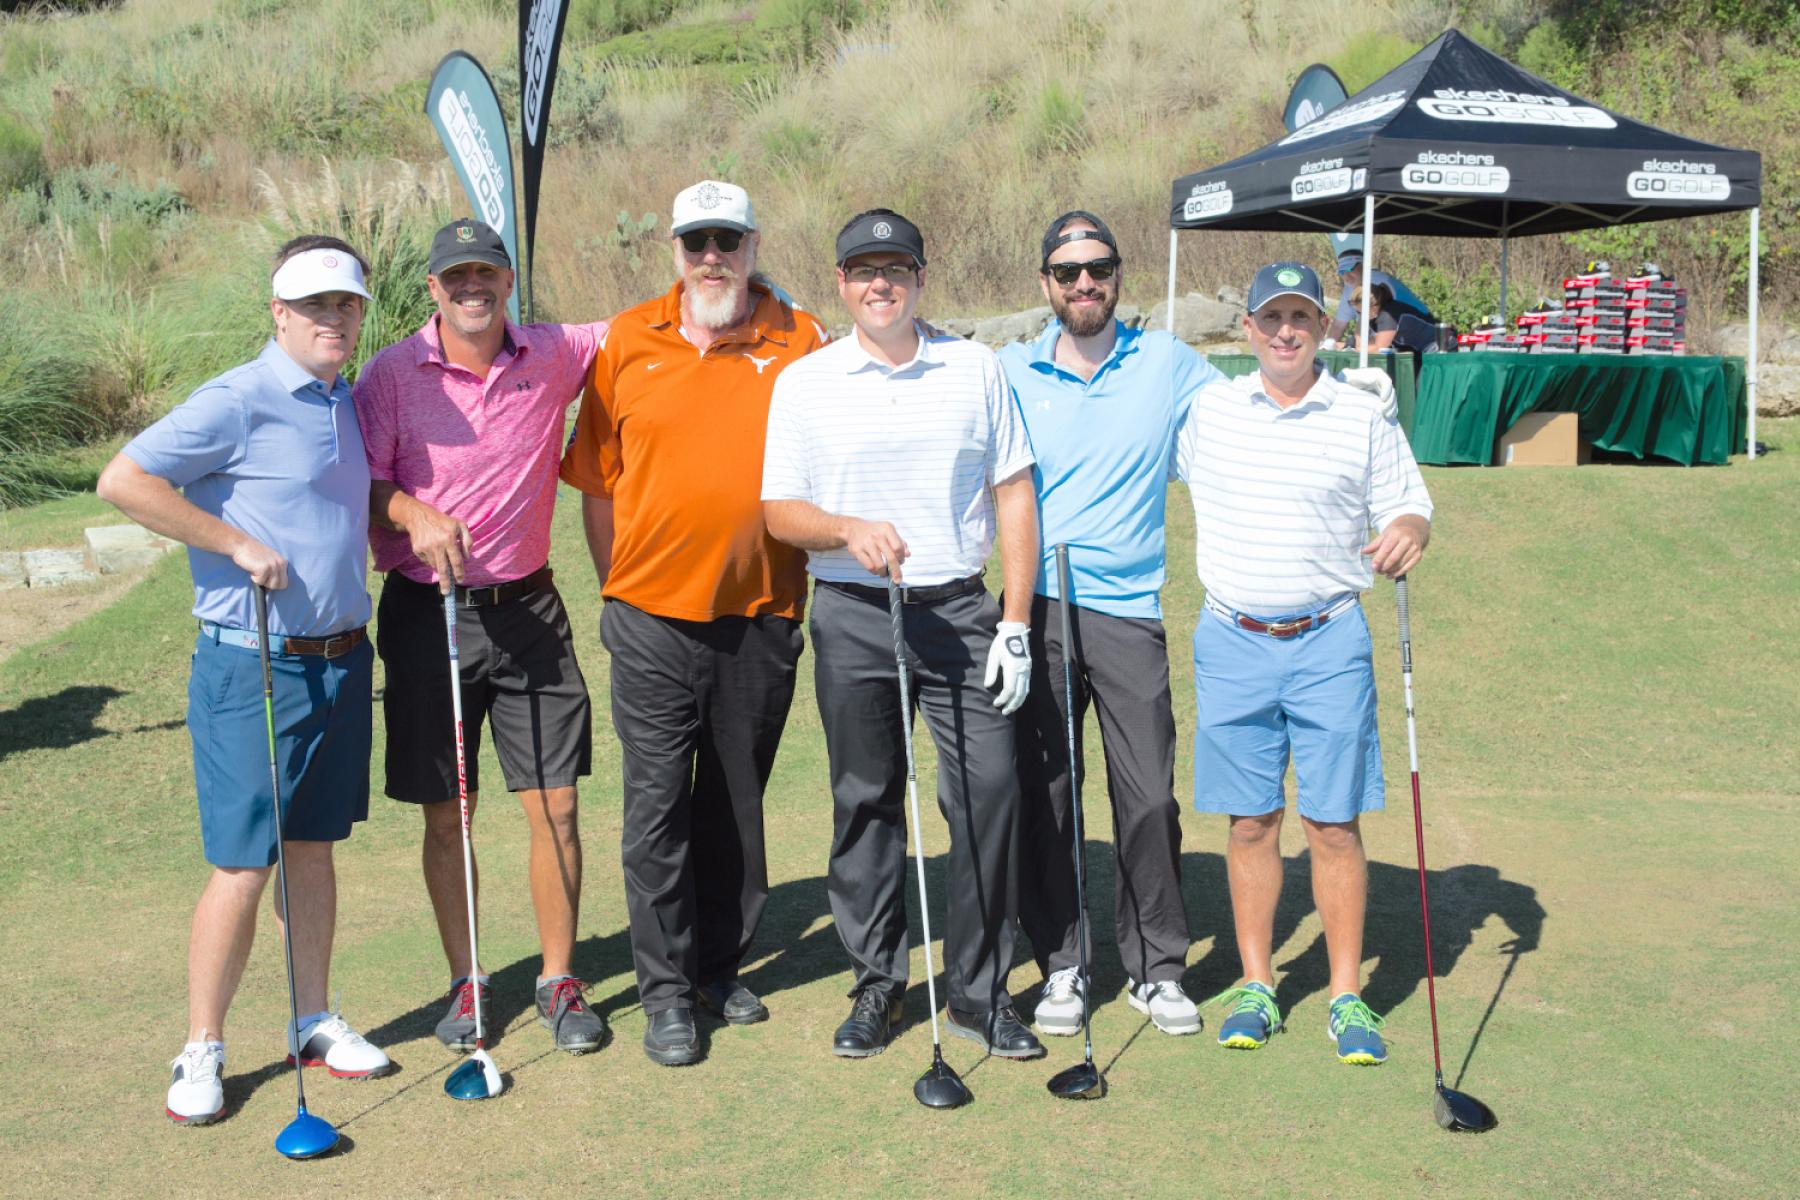 The First Tee of Greater Austin's More Than A Game Captain's Cup Celebrity Golf Tournament